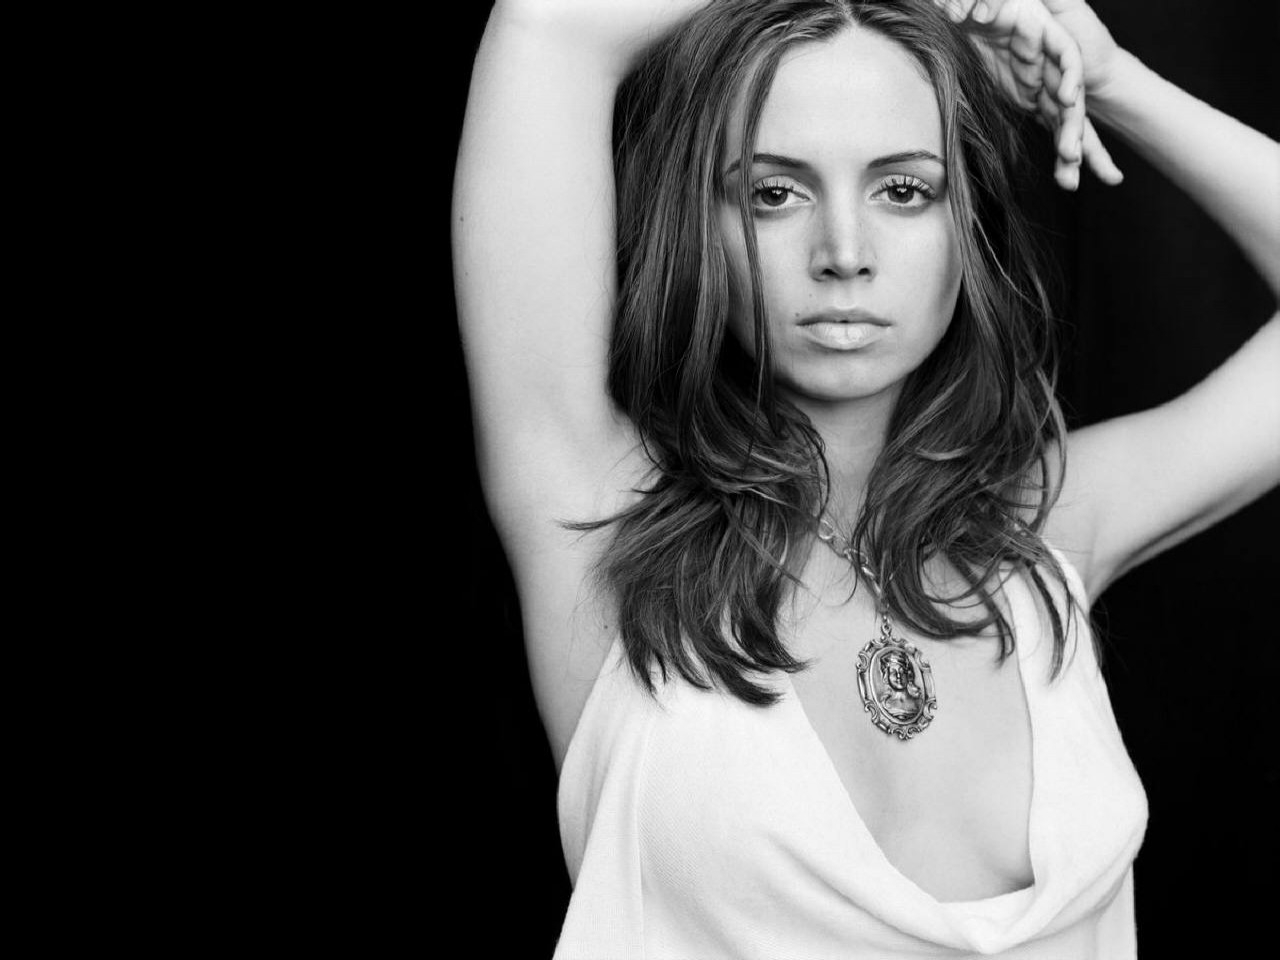 Wallpaper di Eliza Dushku in b/n